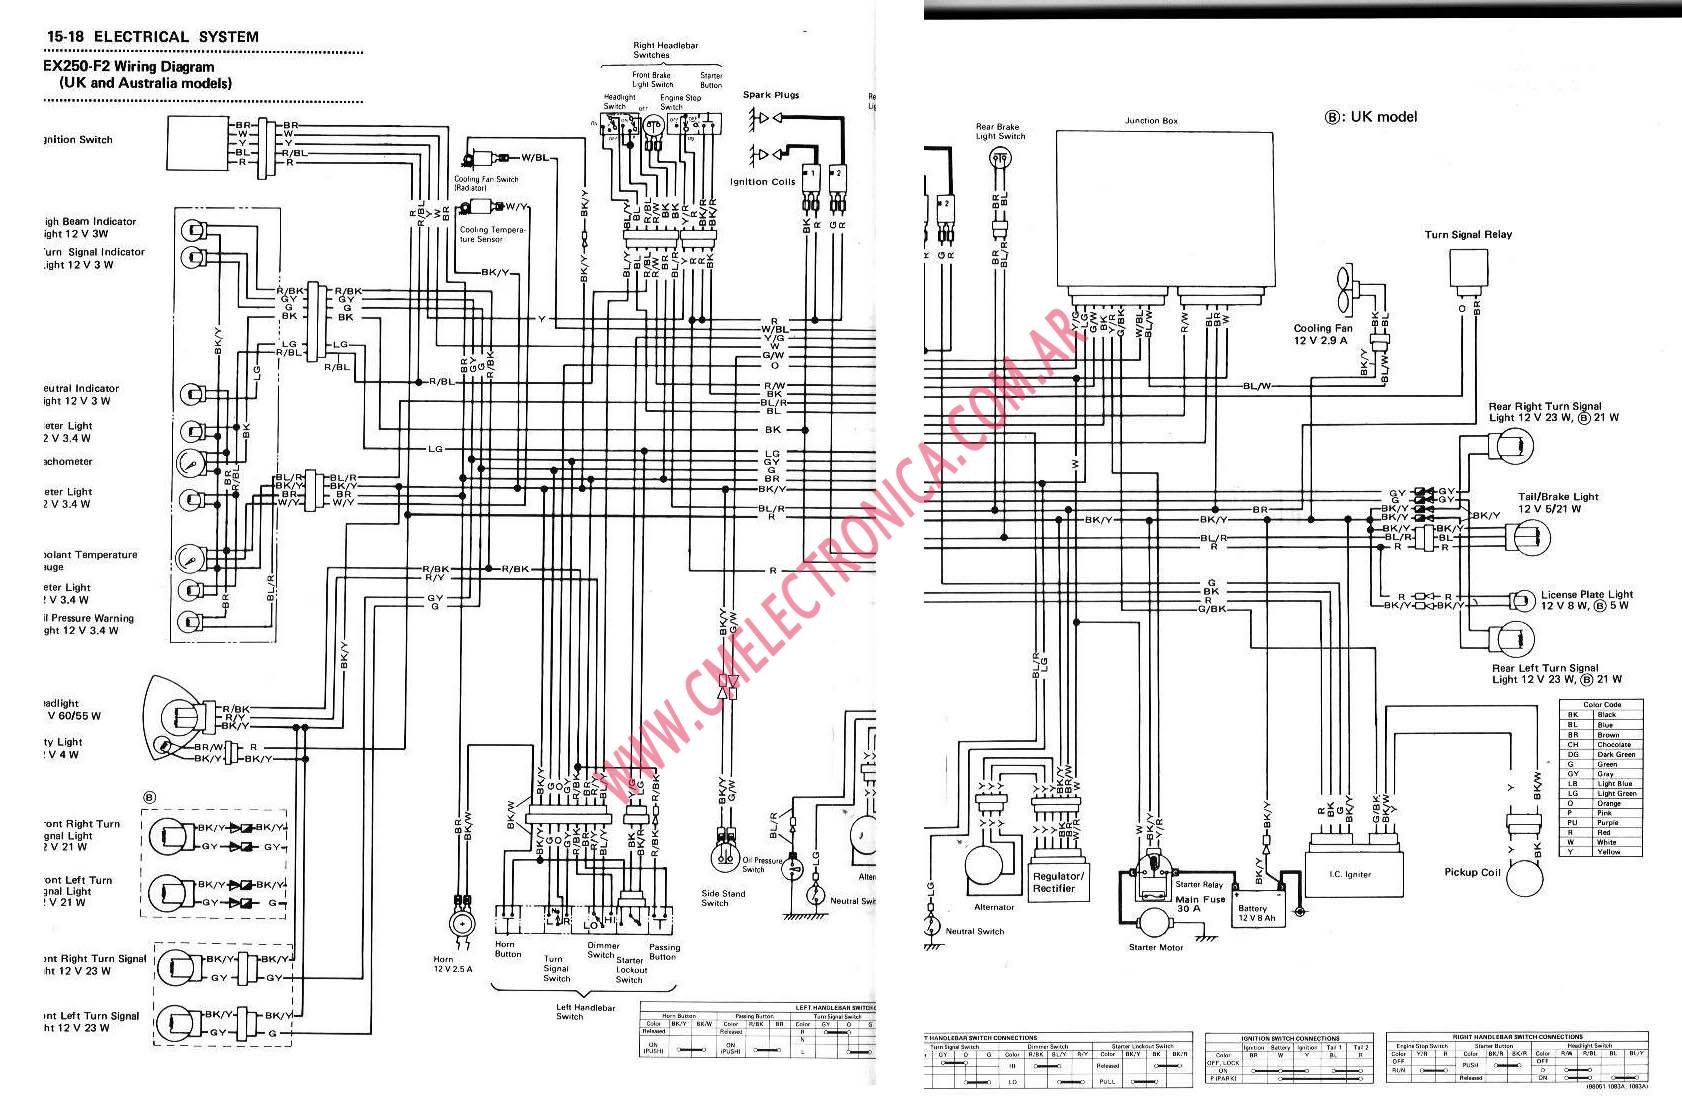 Wiring Diagram For A Kawasaki Bayou 220 - Wiring Diagrams on